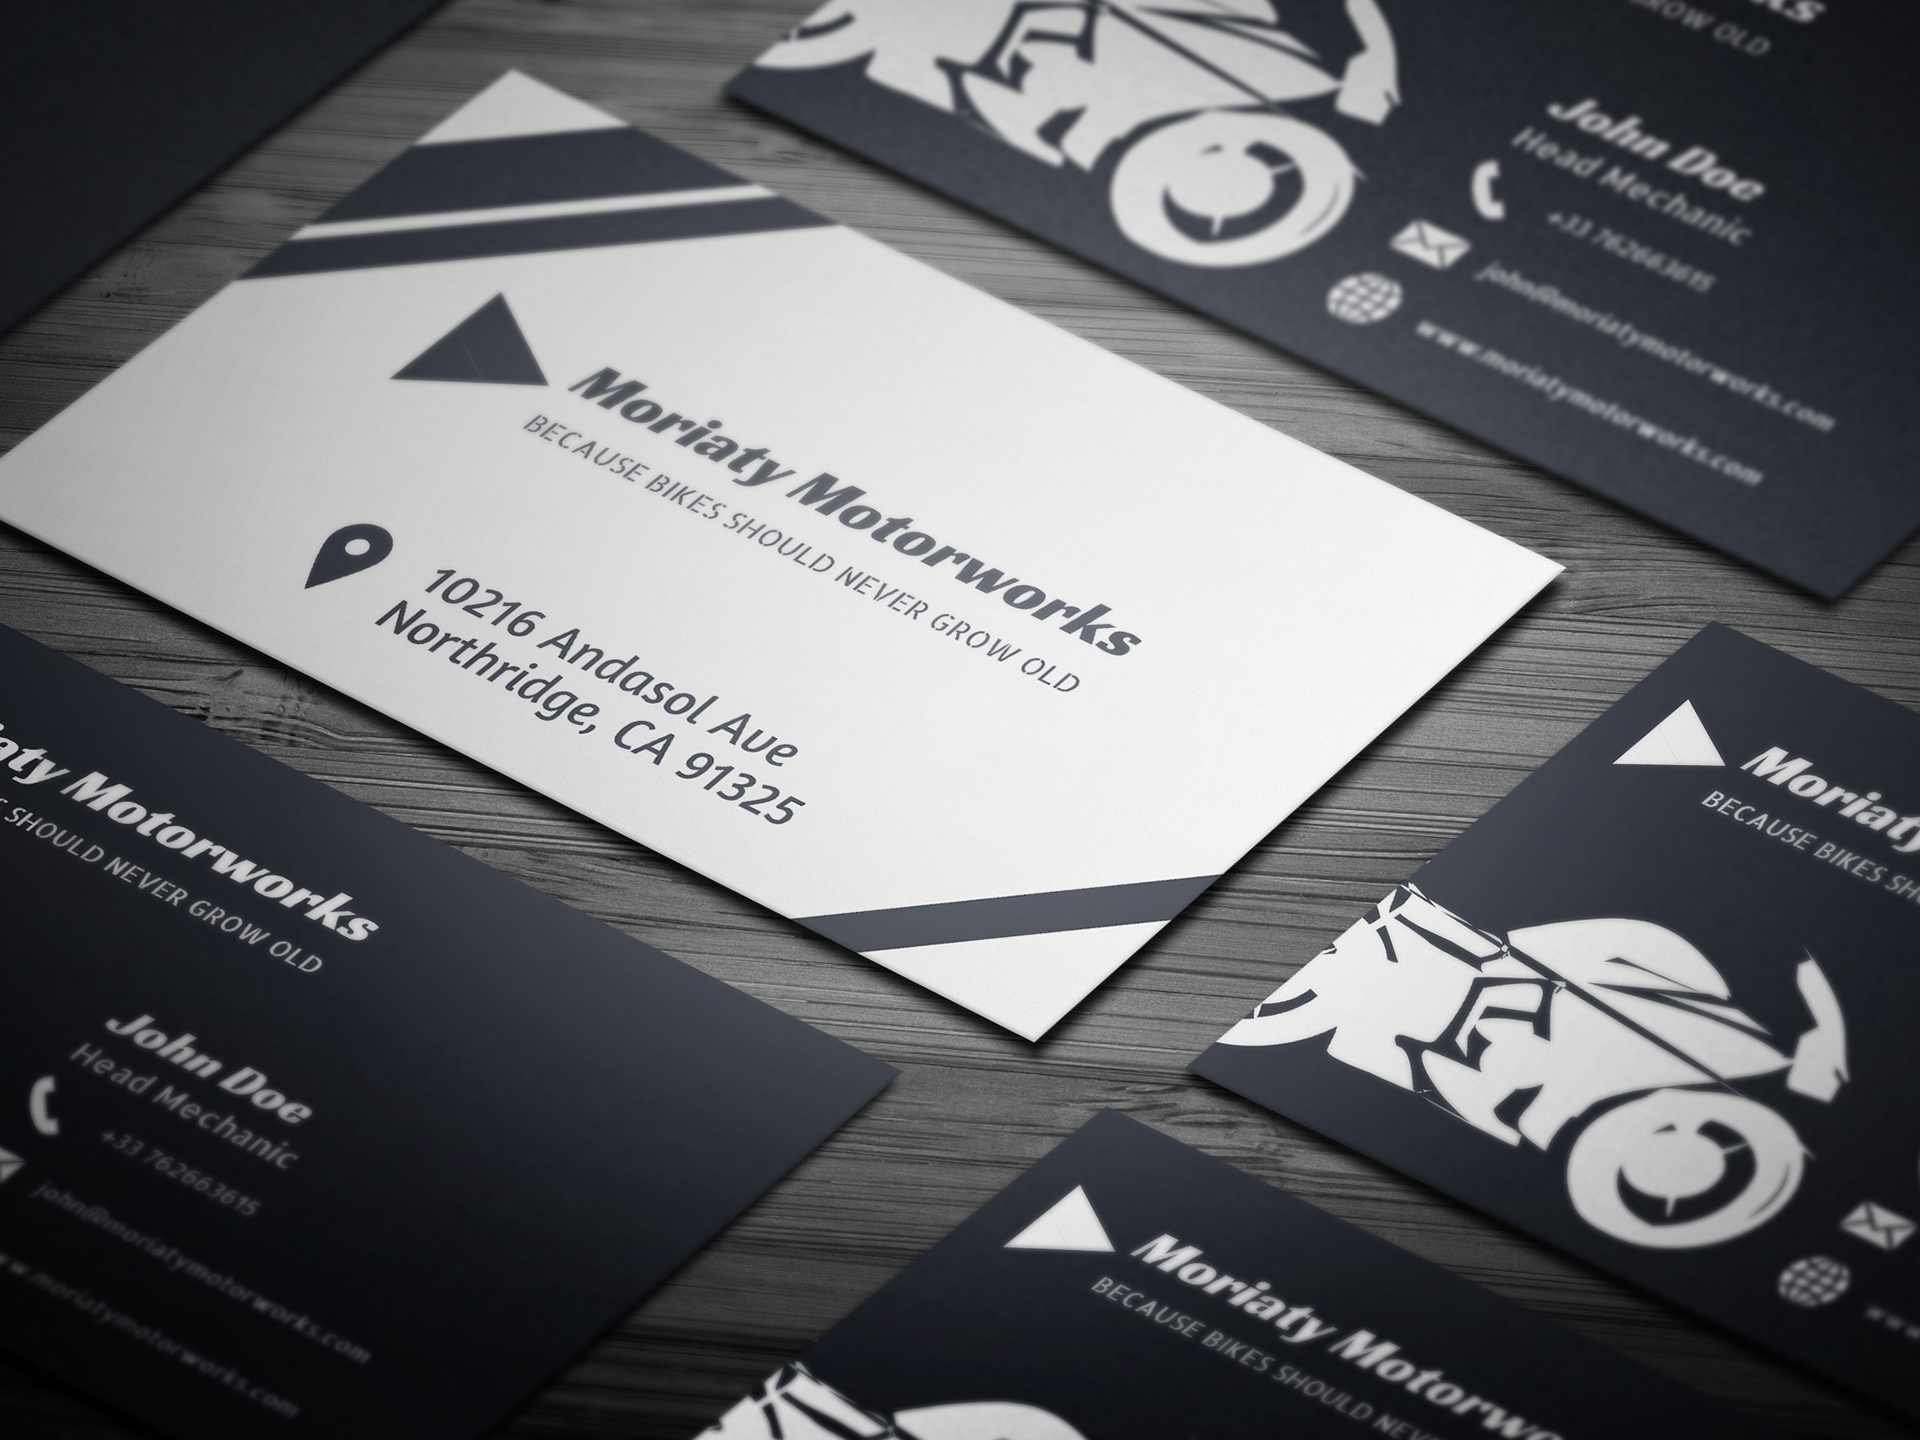 21+ FREE Automotive Business Card Templates on Behance Intended For Automotive Business Card Templates